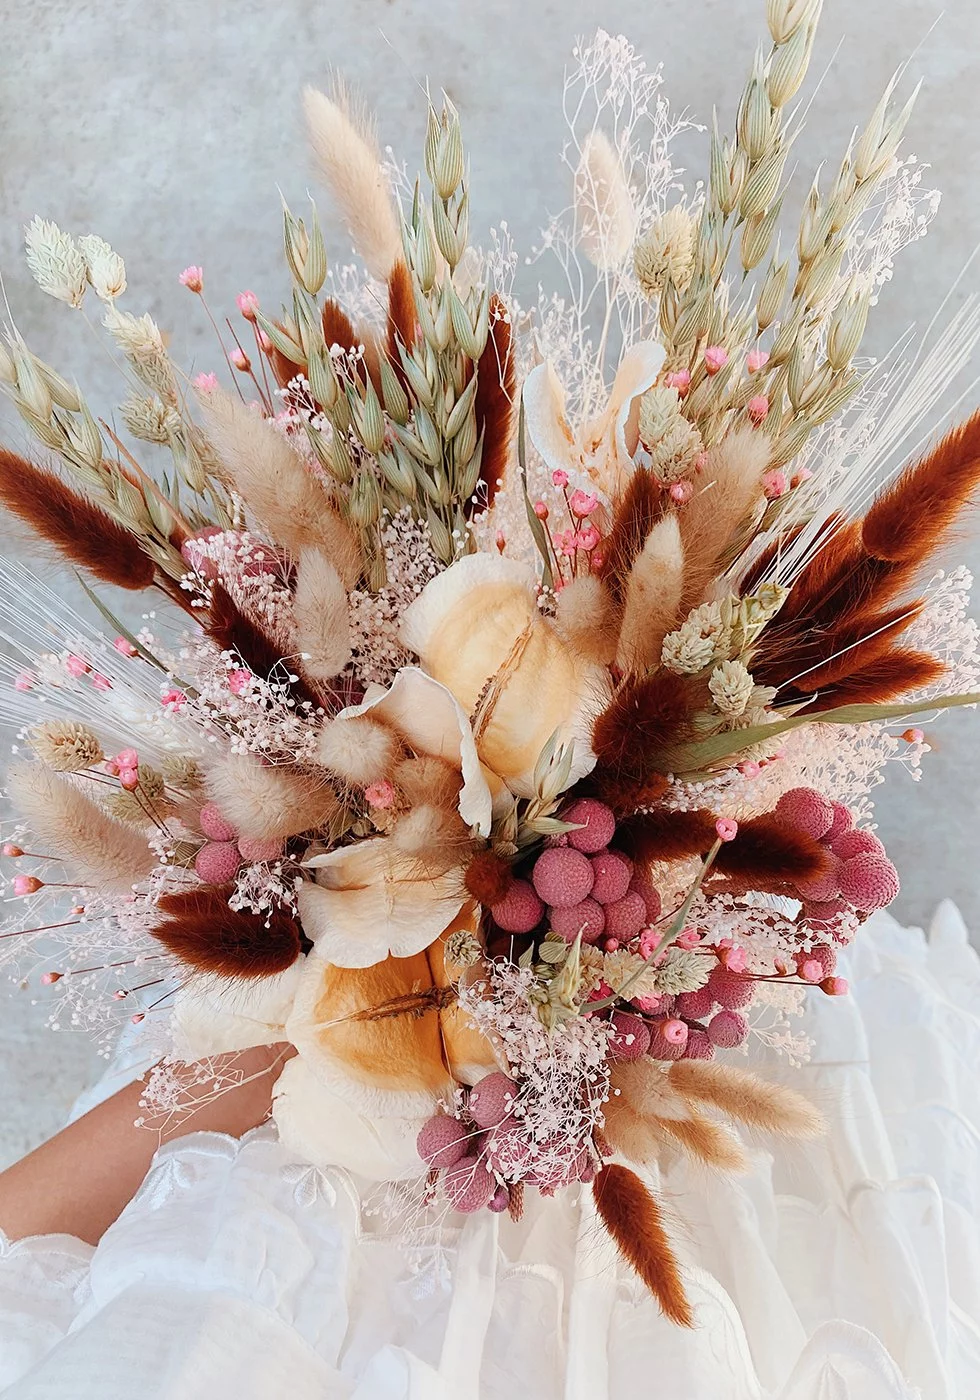 [9+] Bouquet Of Flowers For Awedding